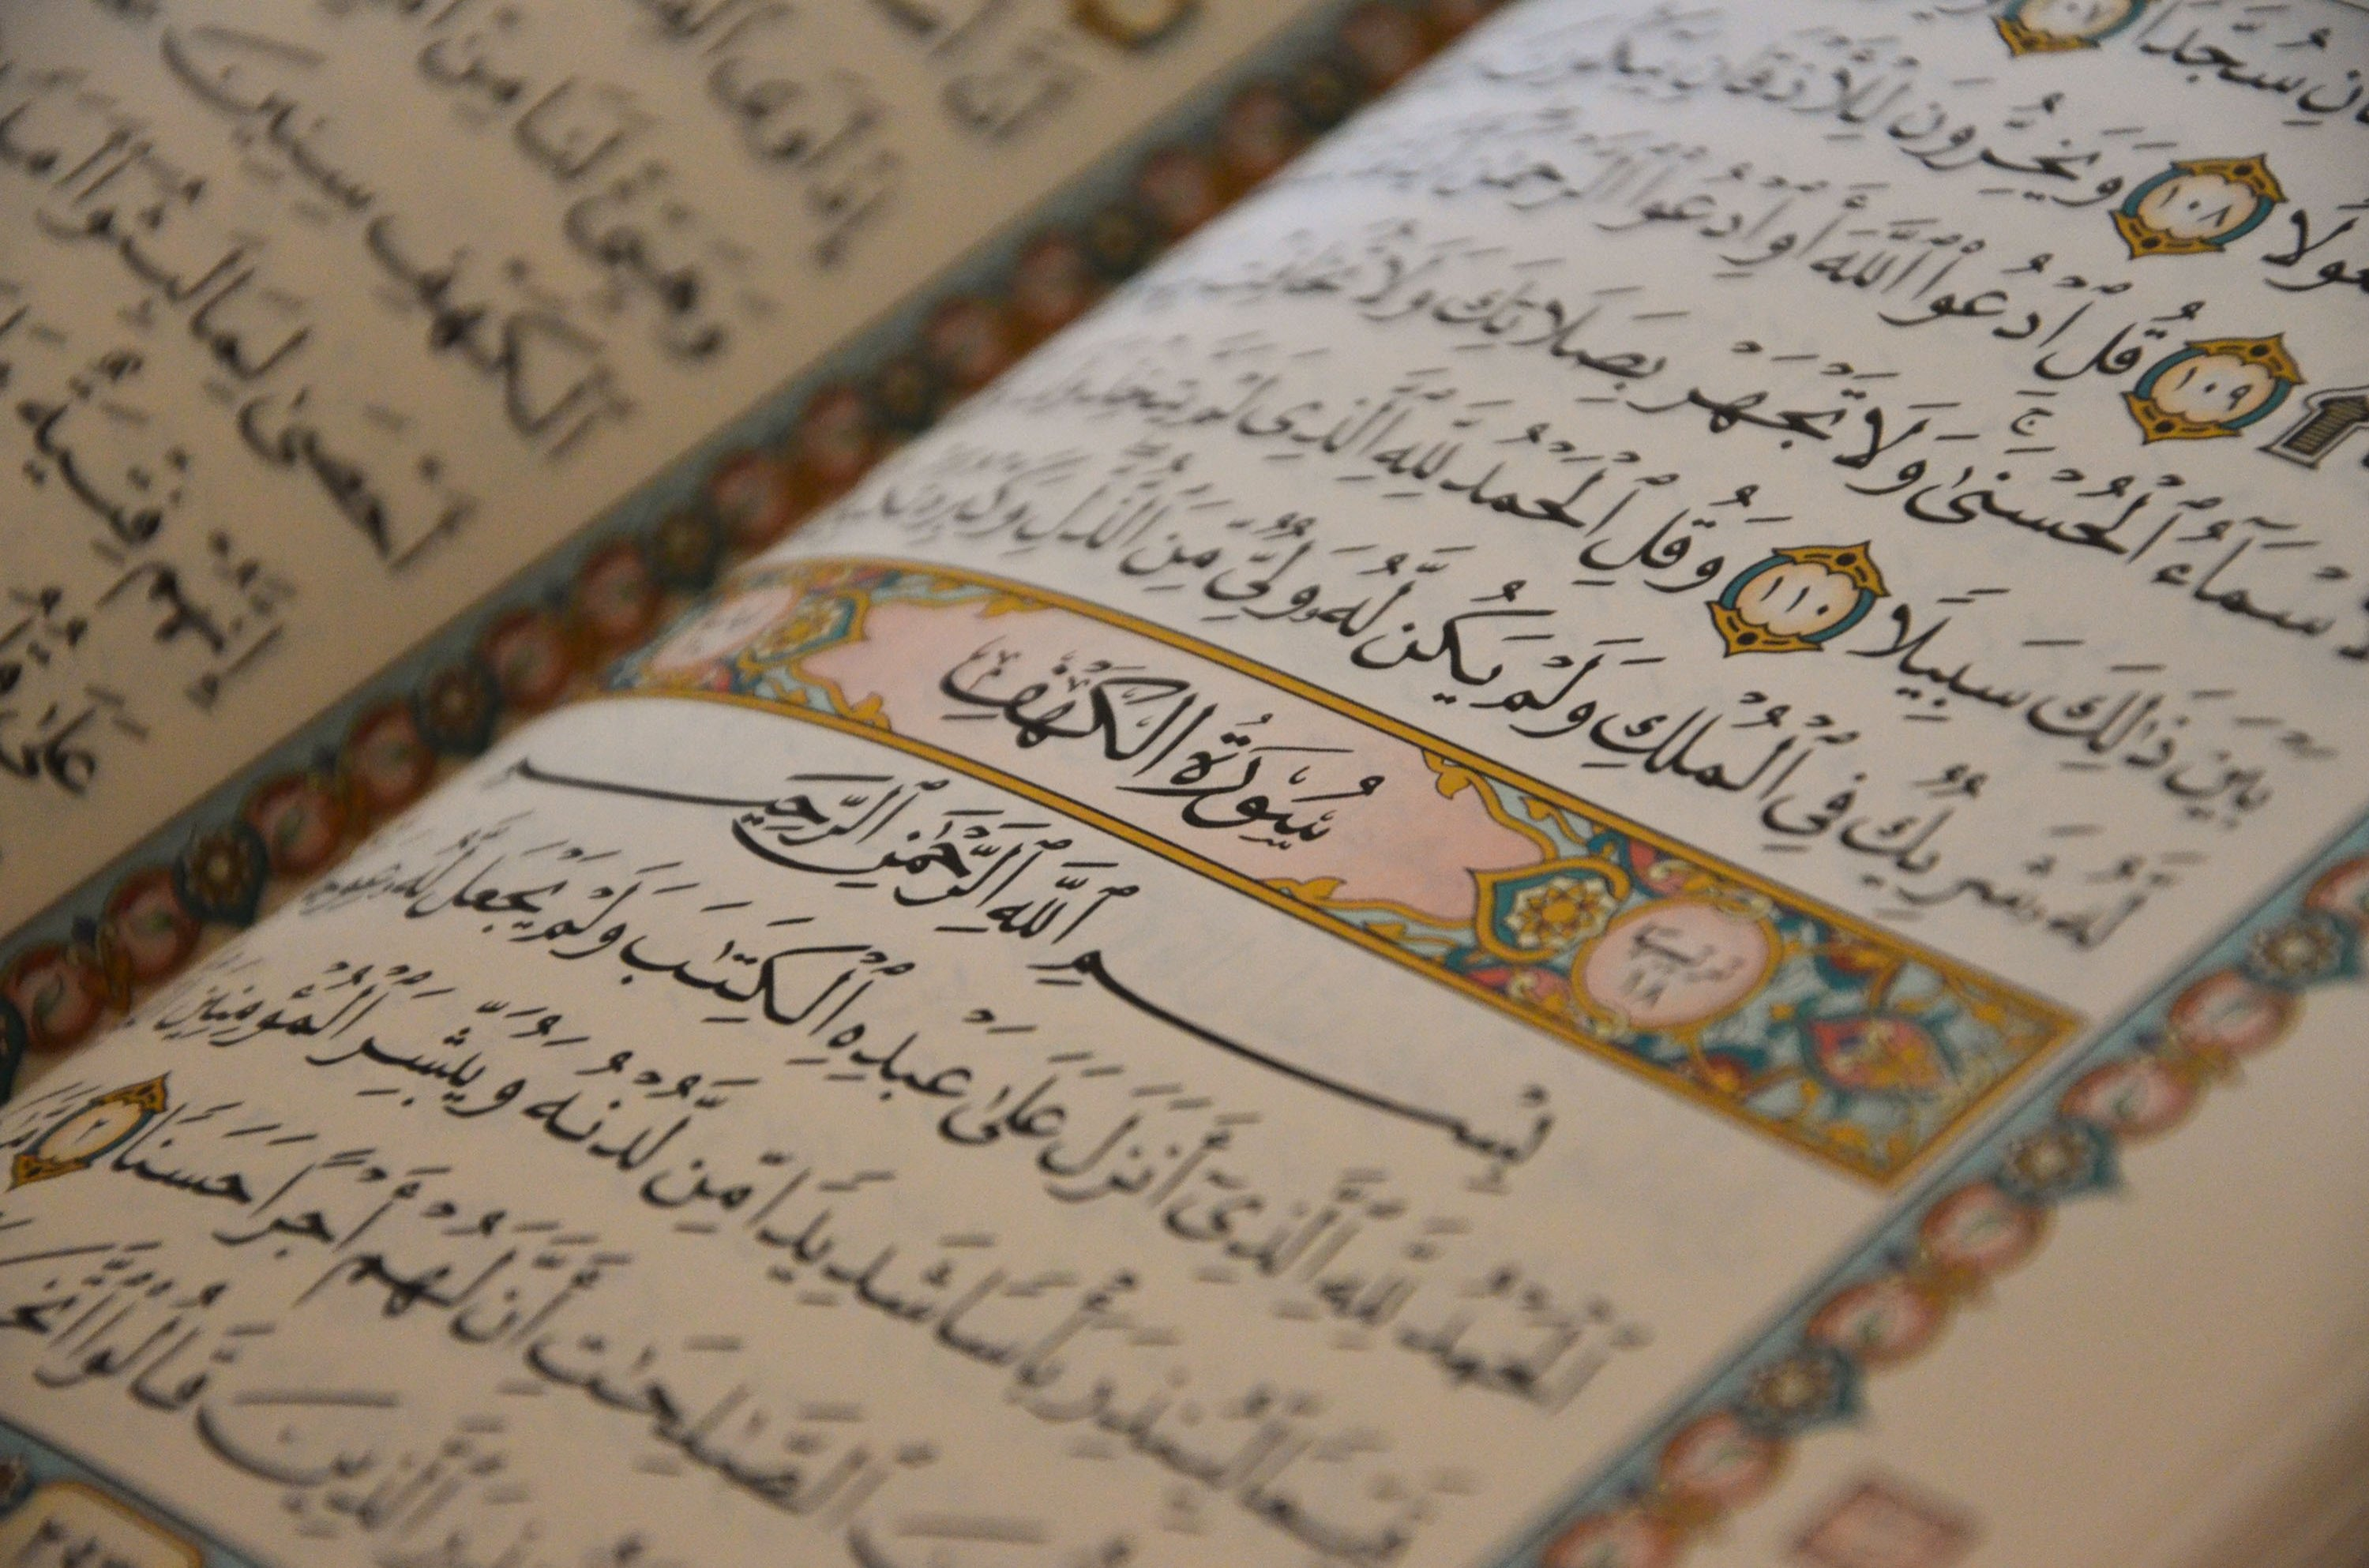 The Quran, the holy book of Islam. (Shutterstock Photo)